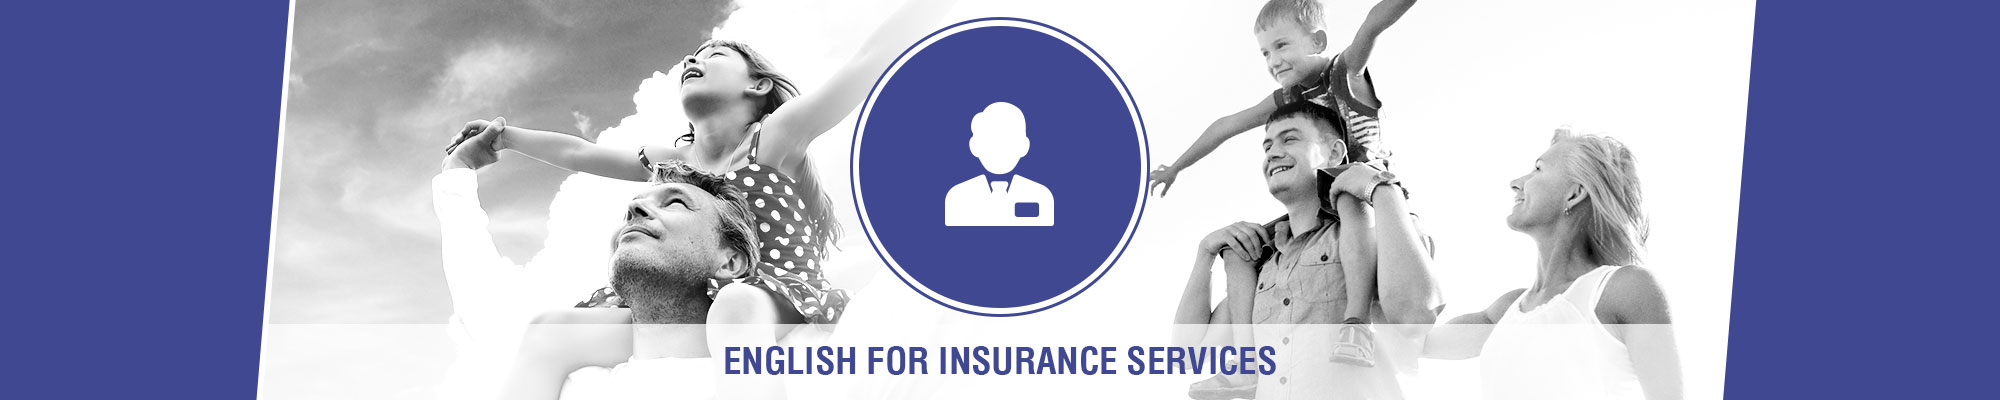 Anglokom Corporate Language Training Bangkok - English for Insurance